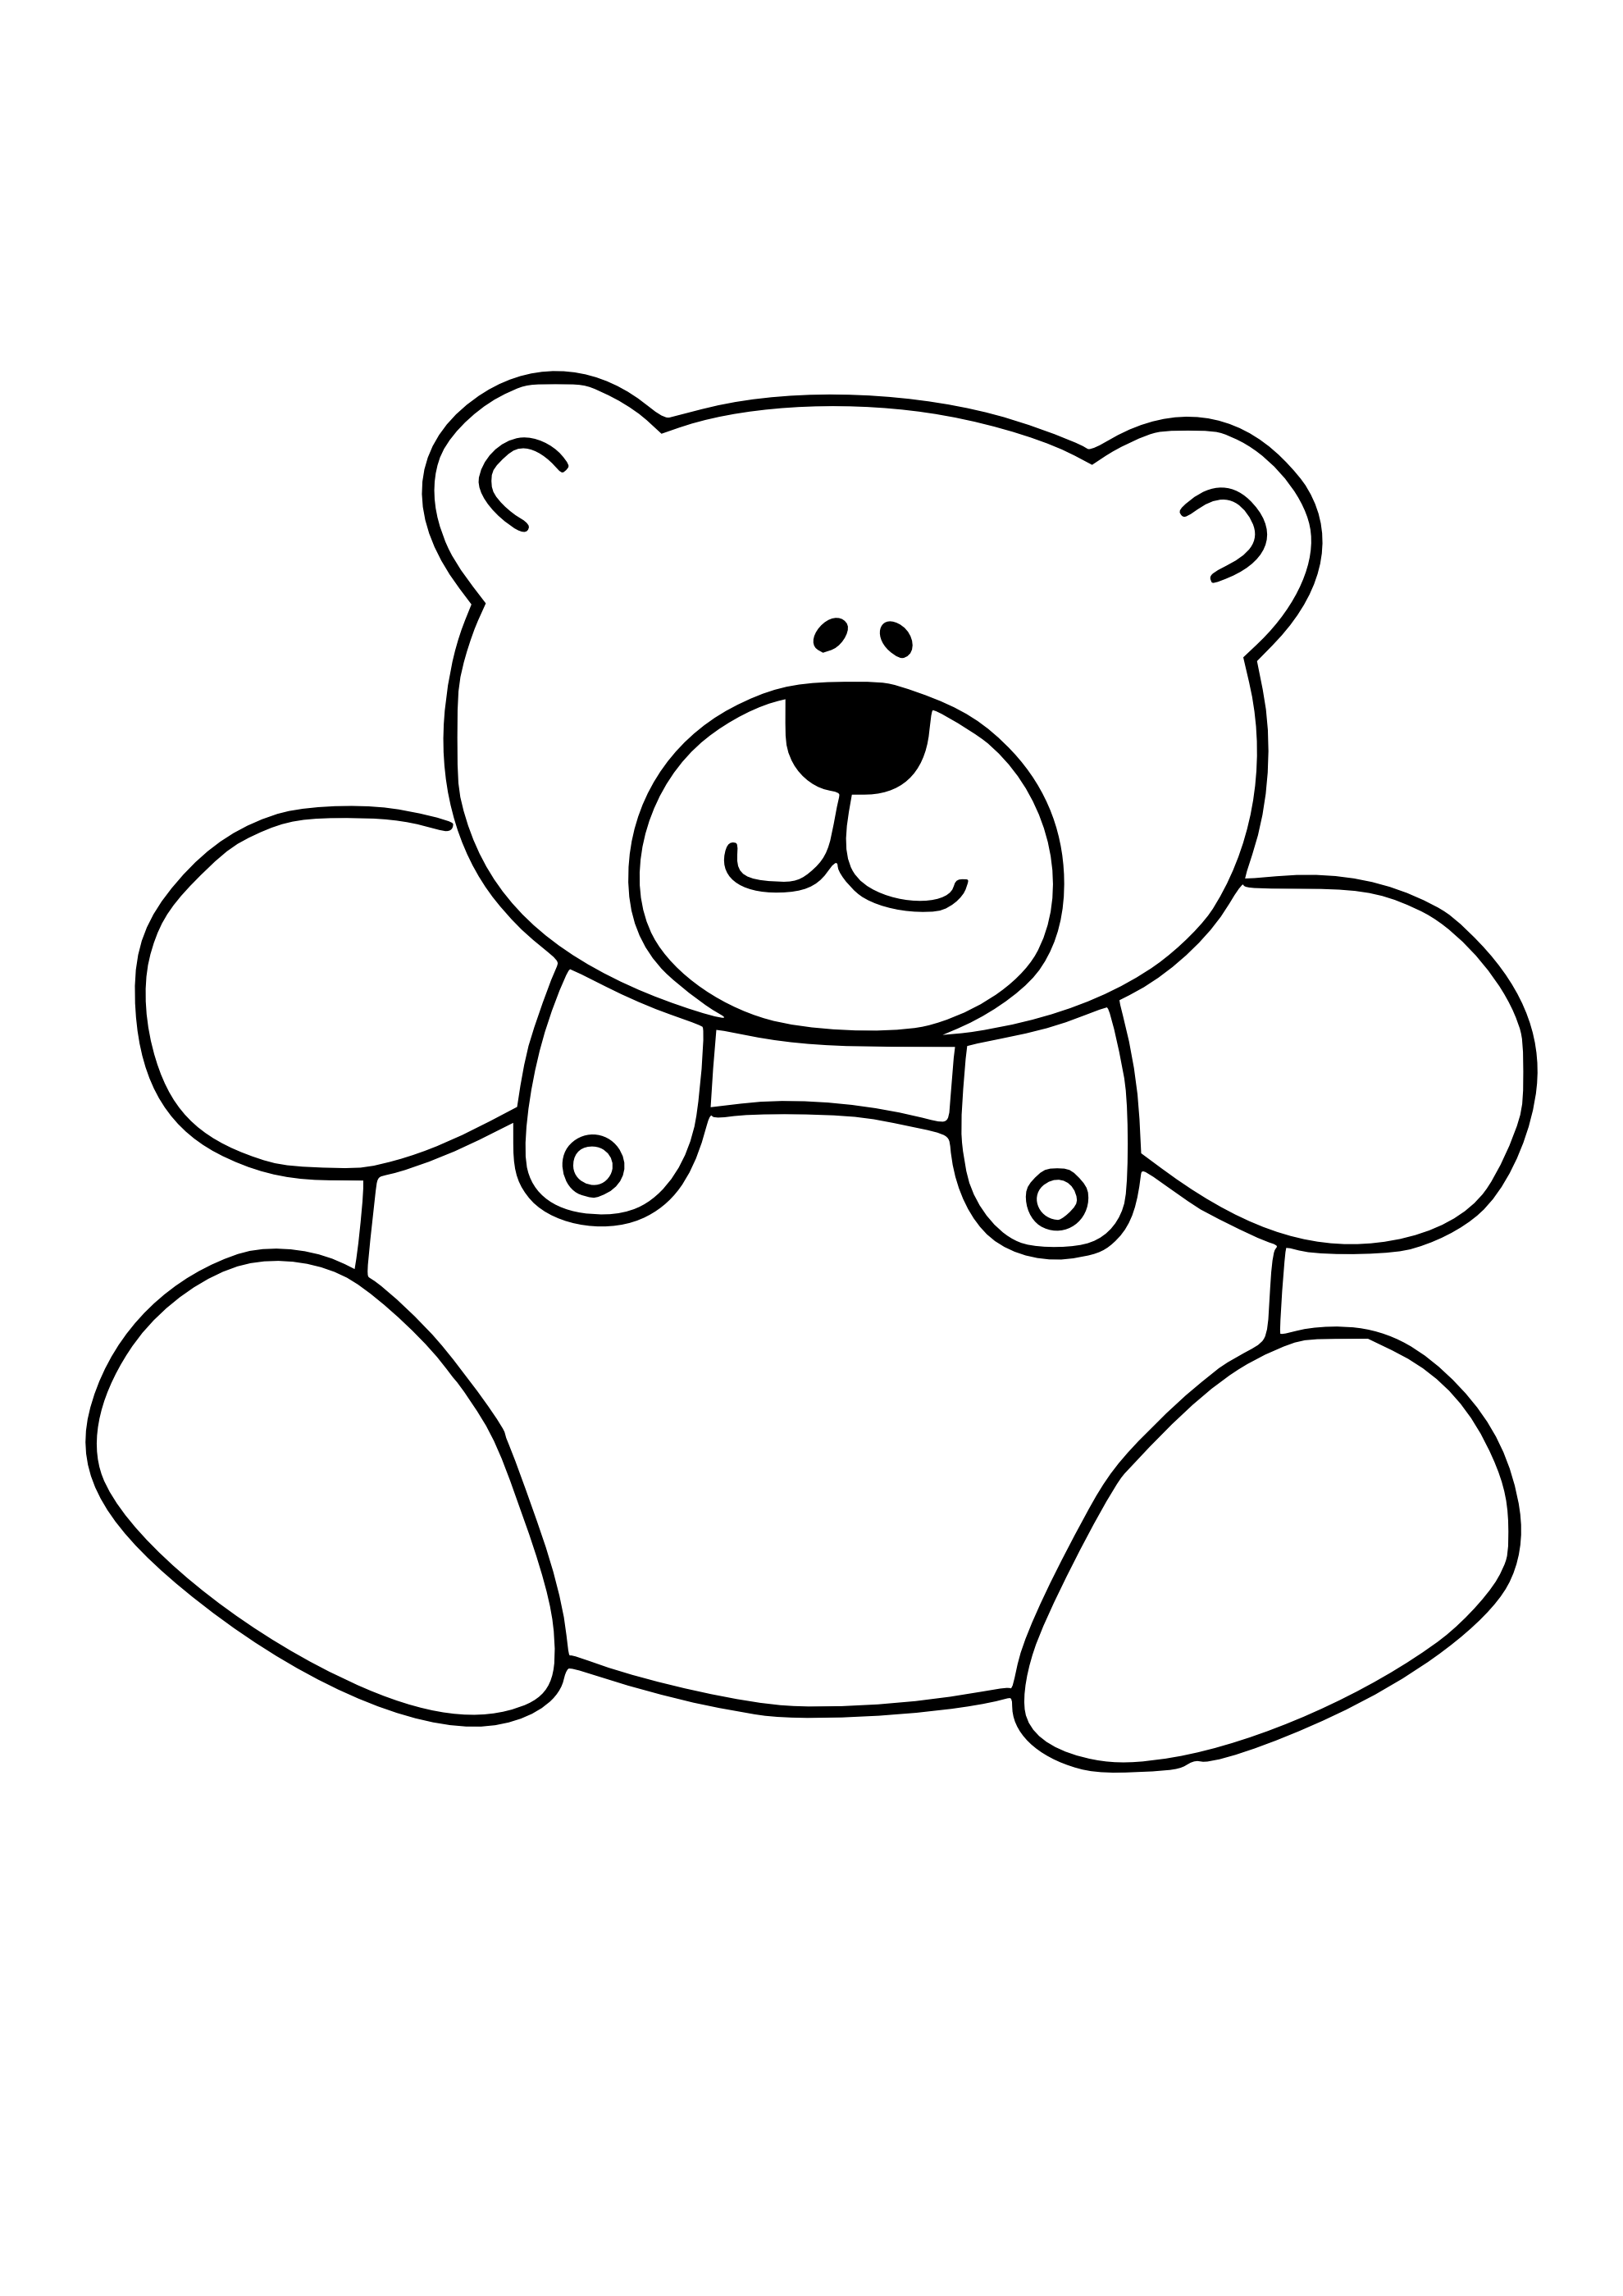 PNG Teddy Bear Black And White - 59048